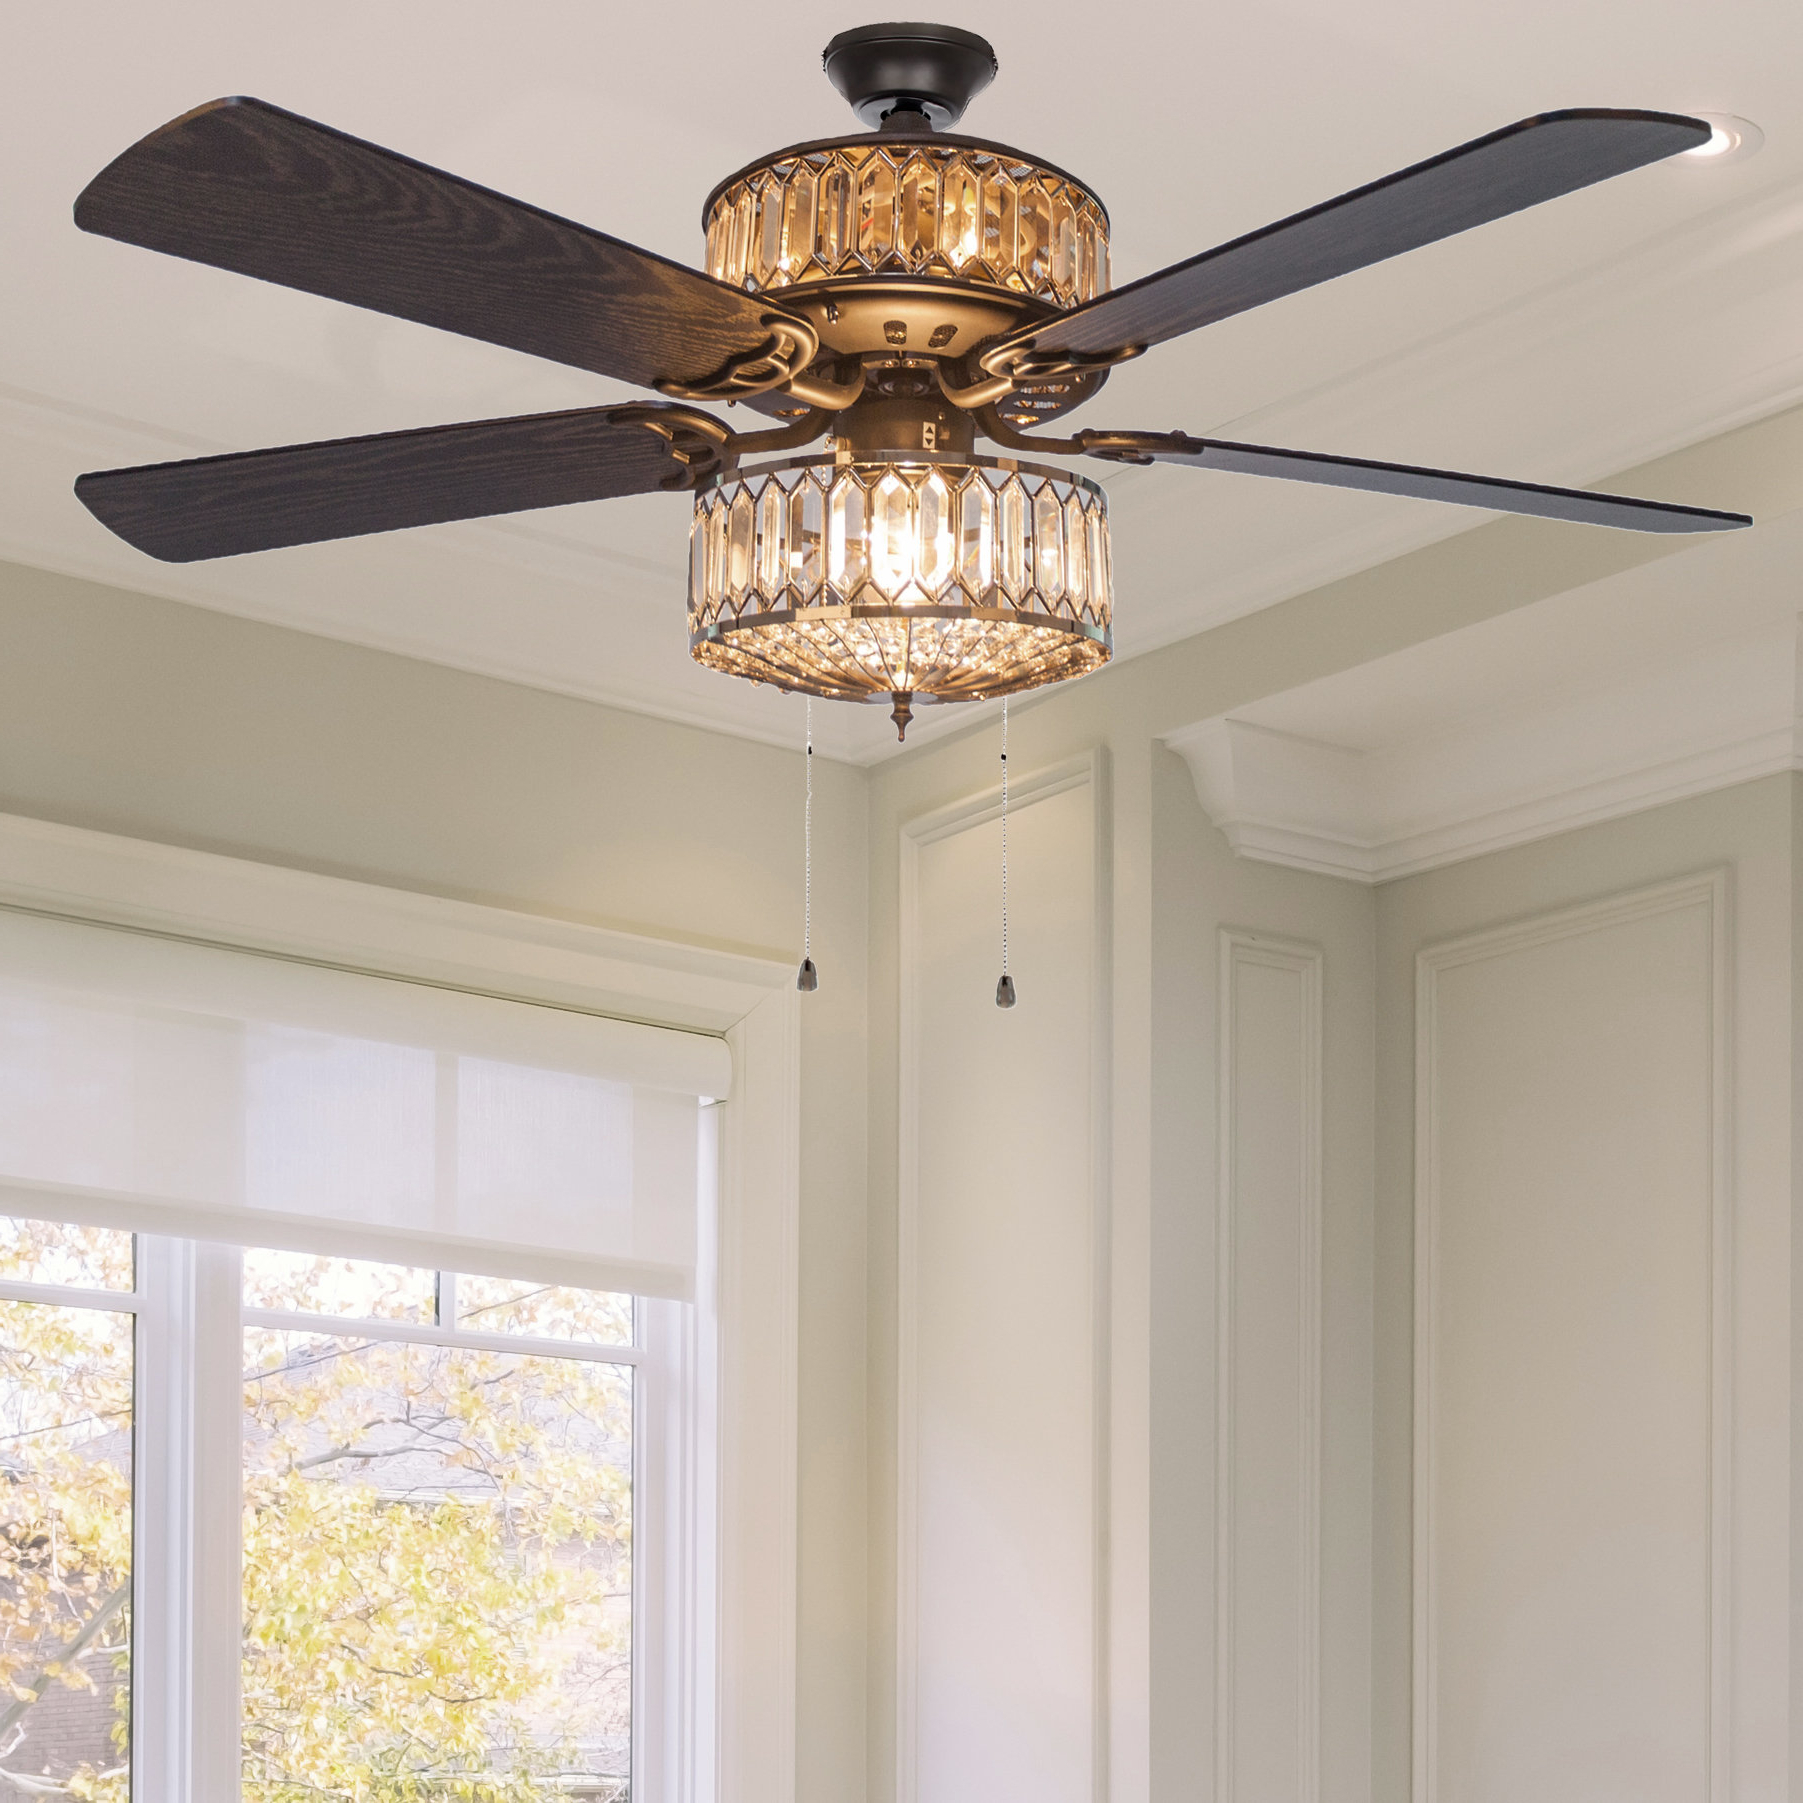 "52"" Norah 5 Blade Ceiling Fan With Remote, Light Kit Included Intended For Most Popular Norah 5 Blade Ceiling Fans (Gallery 1 of 20)"